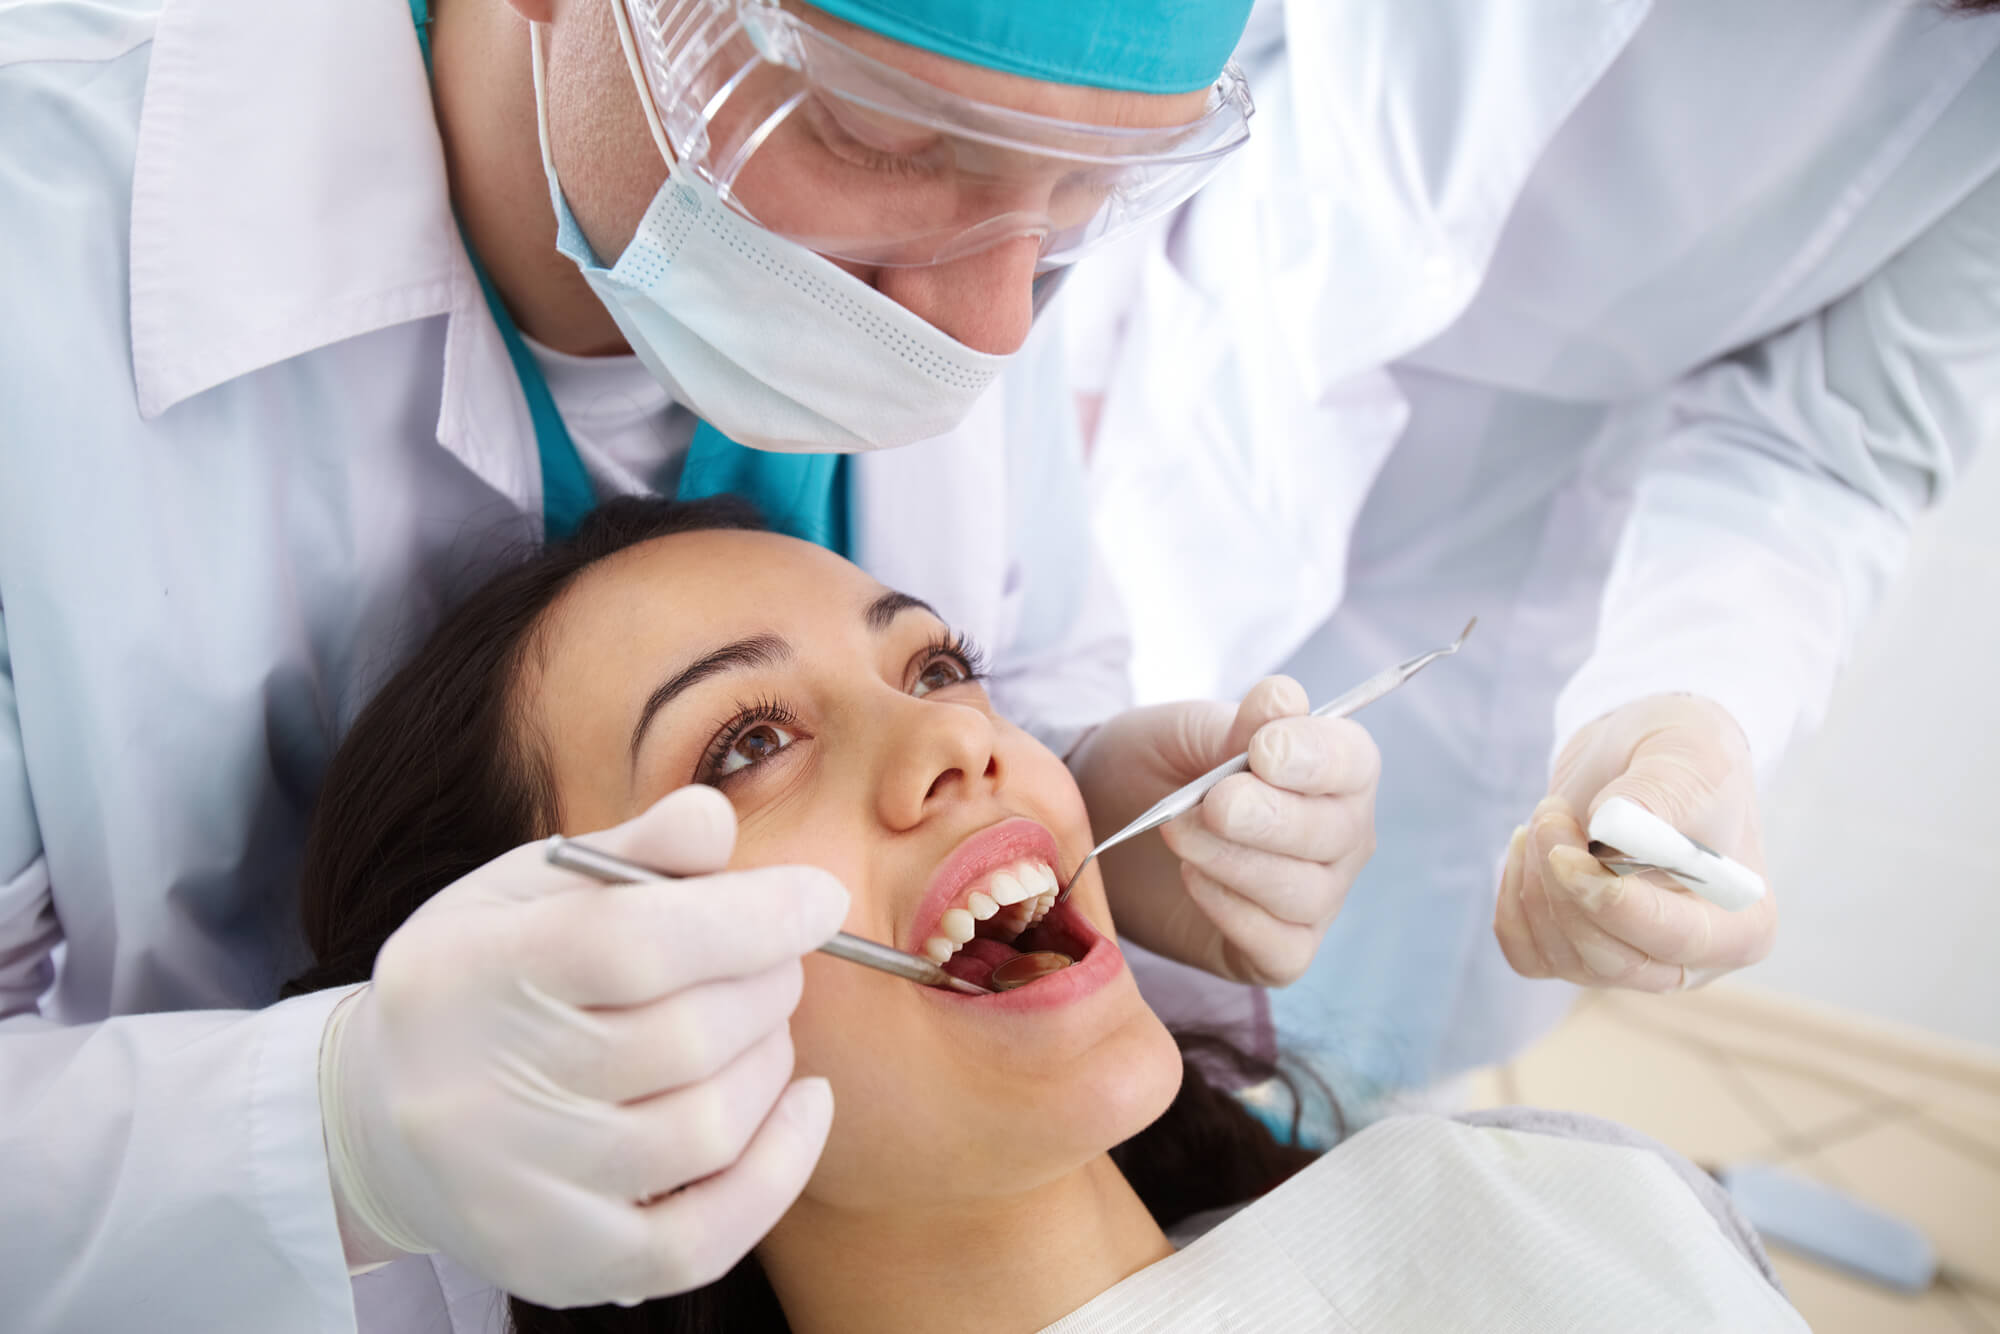 where is the best dental emergency seattle?